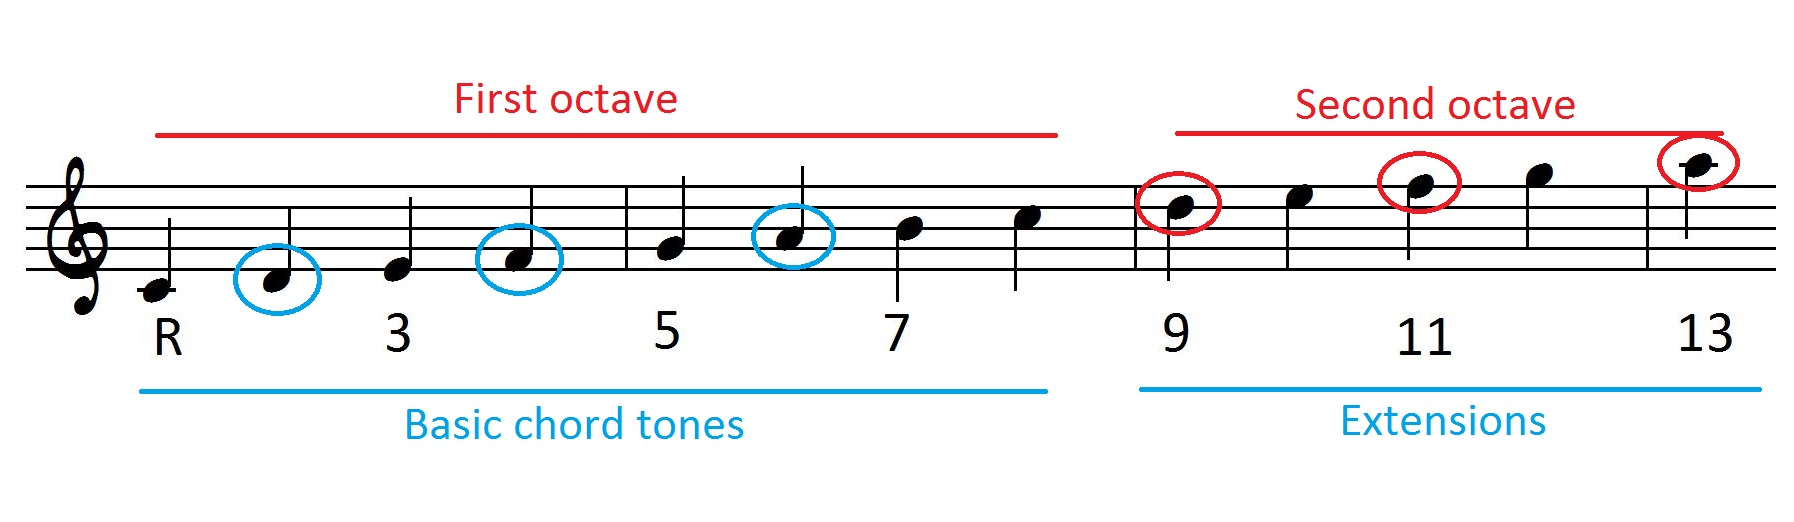 How to build chord extensions and alterations learn jazz standards which extensions can you use on 7th chords hexwebz Choice Image